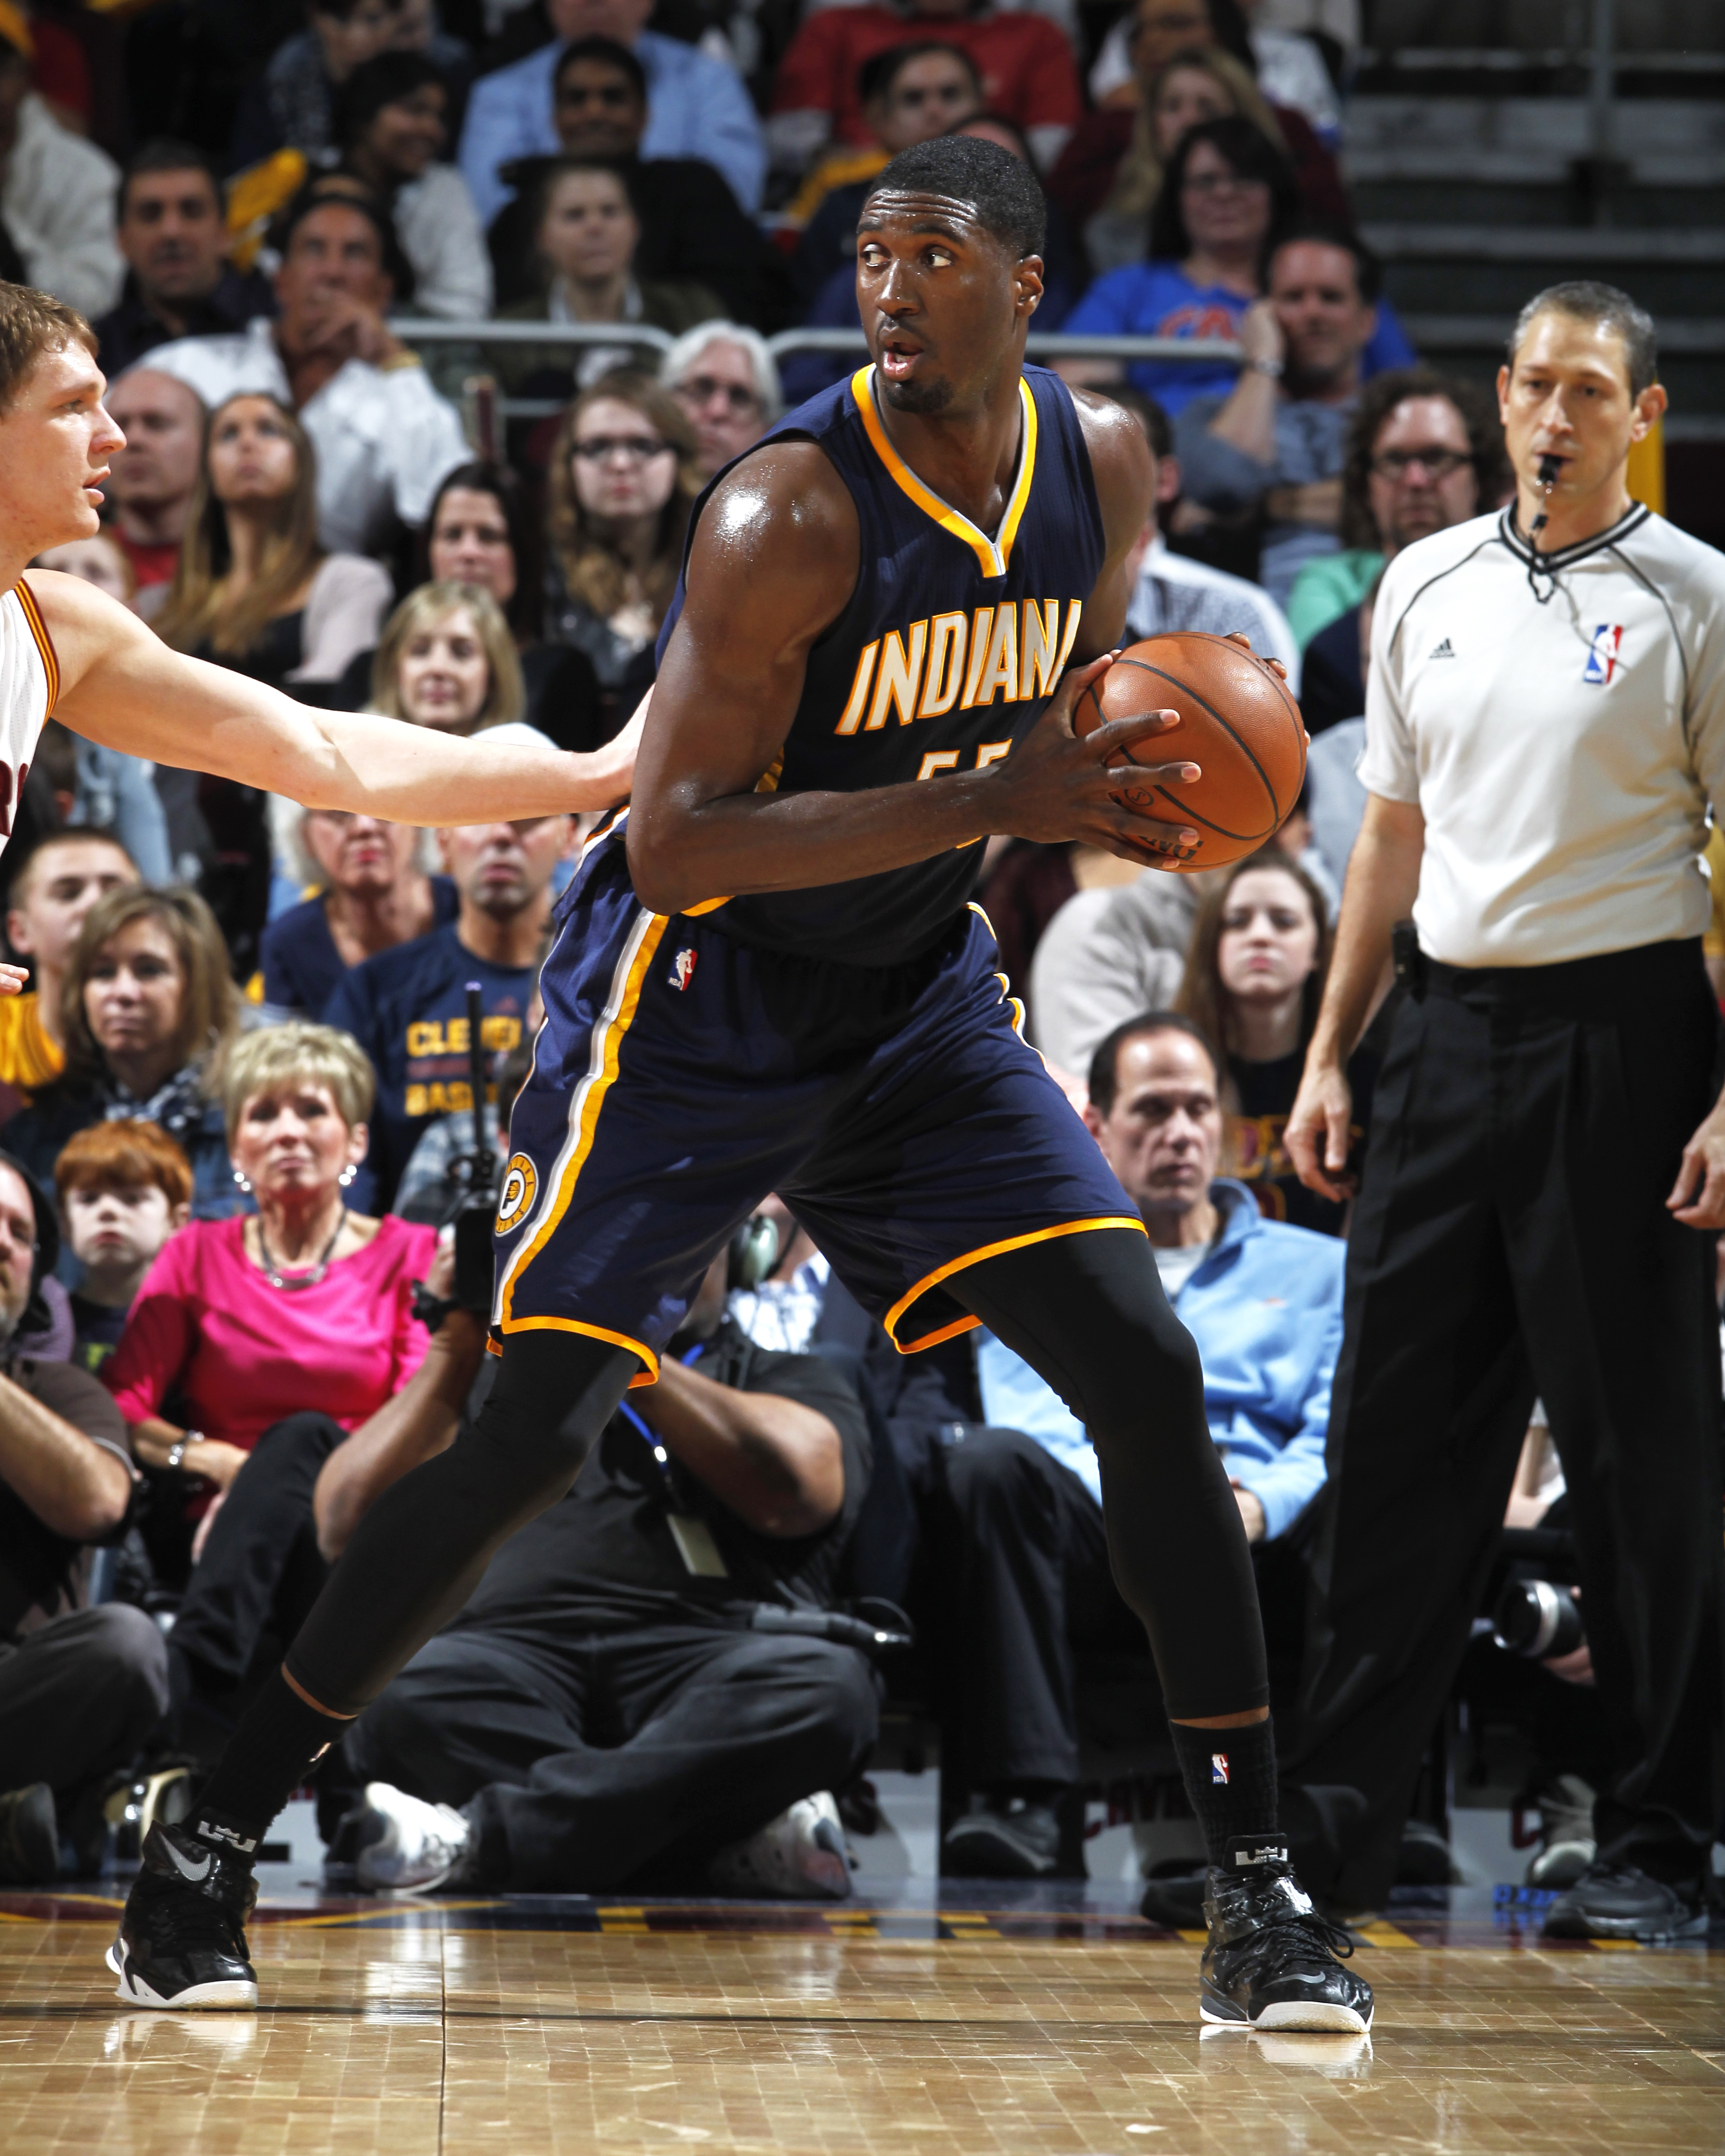 CLEVELAND, OH - MARCH 20: Roy Hibbert #55 of the Indiana Pacers handles the ball against the Cleveland Cavaliers at The Quicken Loans Arena on March 20, 2015 in Cleveland, Ohio. (Photo by Gregory Shamus/NBAE via Getty Images)